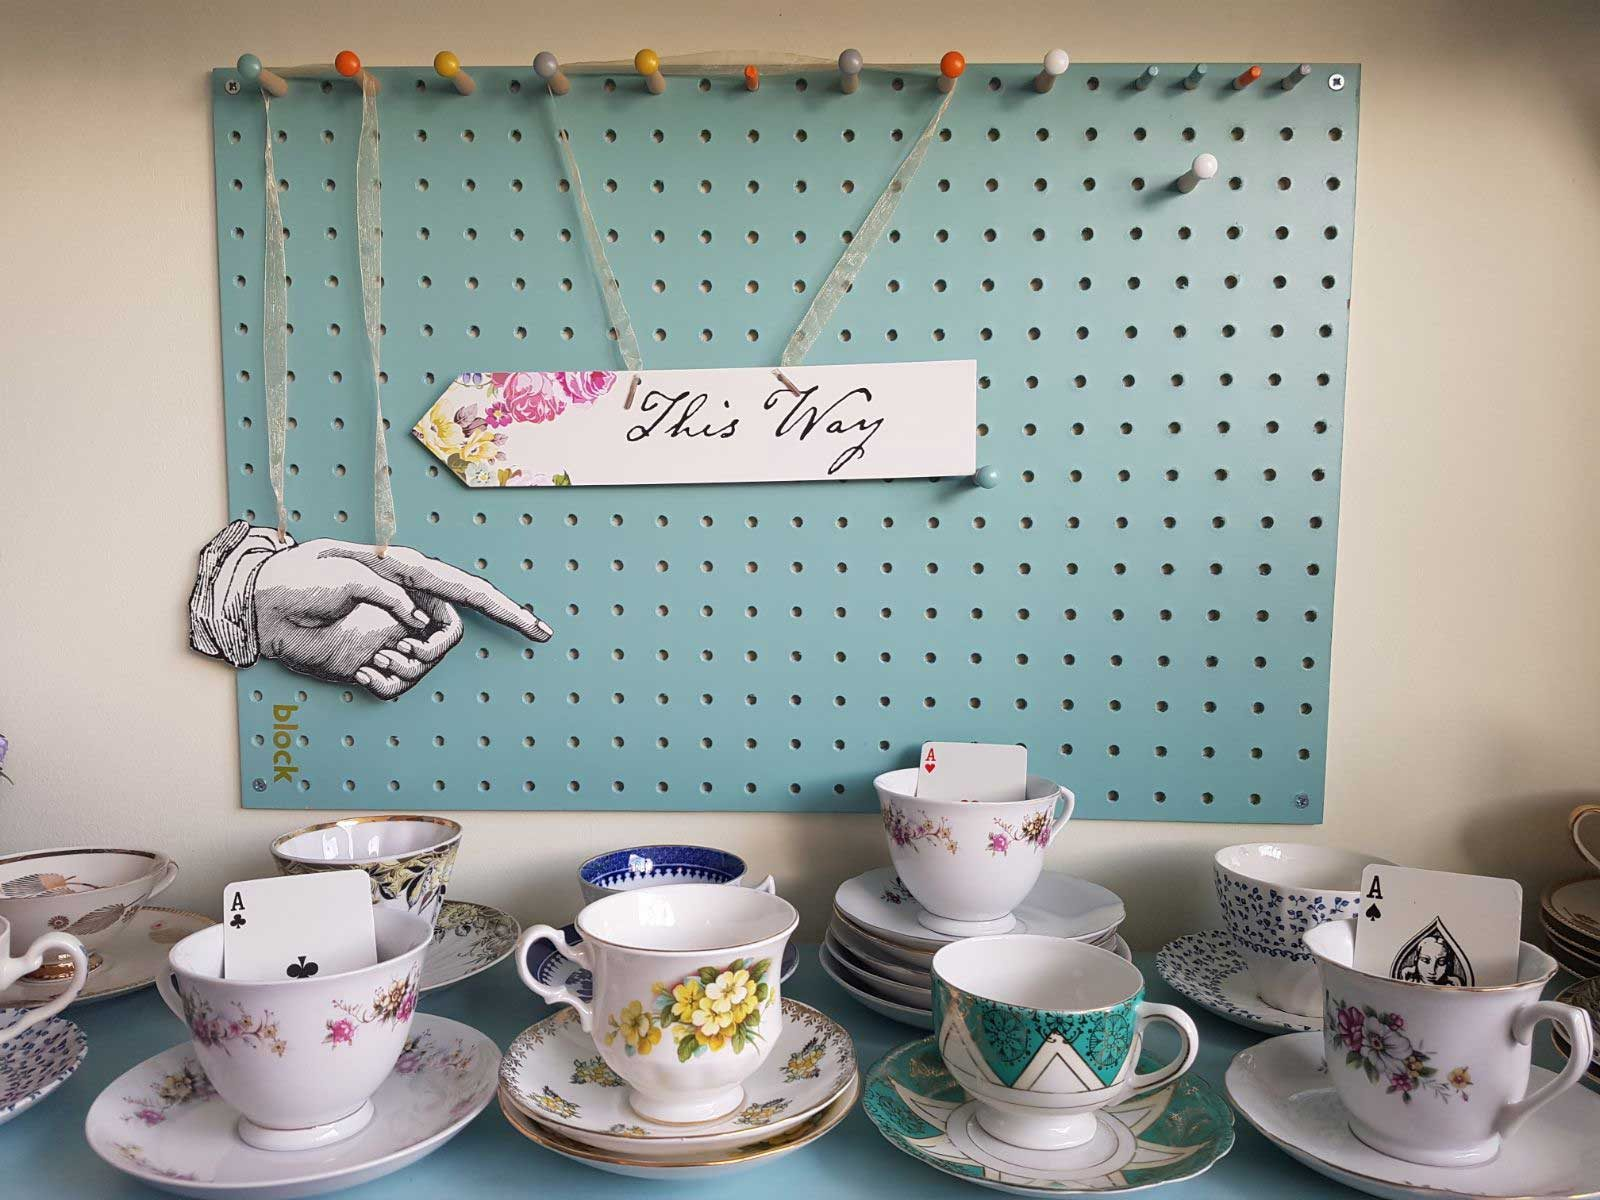 rosie-lee-teacup-teapot-vintage-victorian-tea-party-hire-north-london